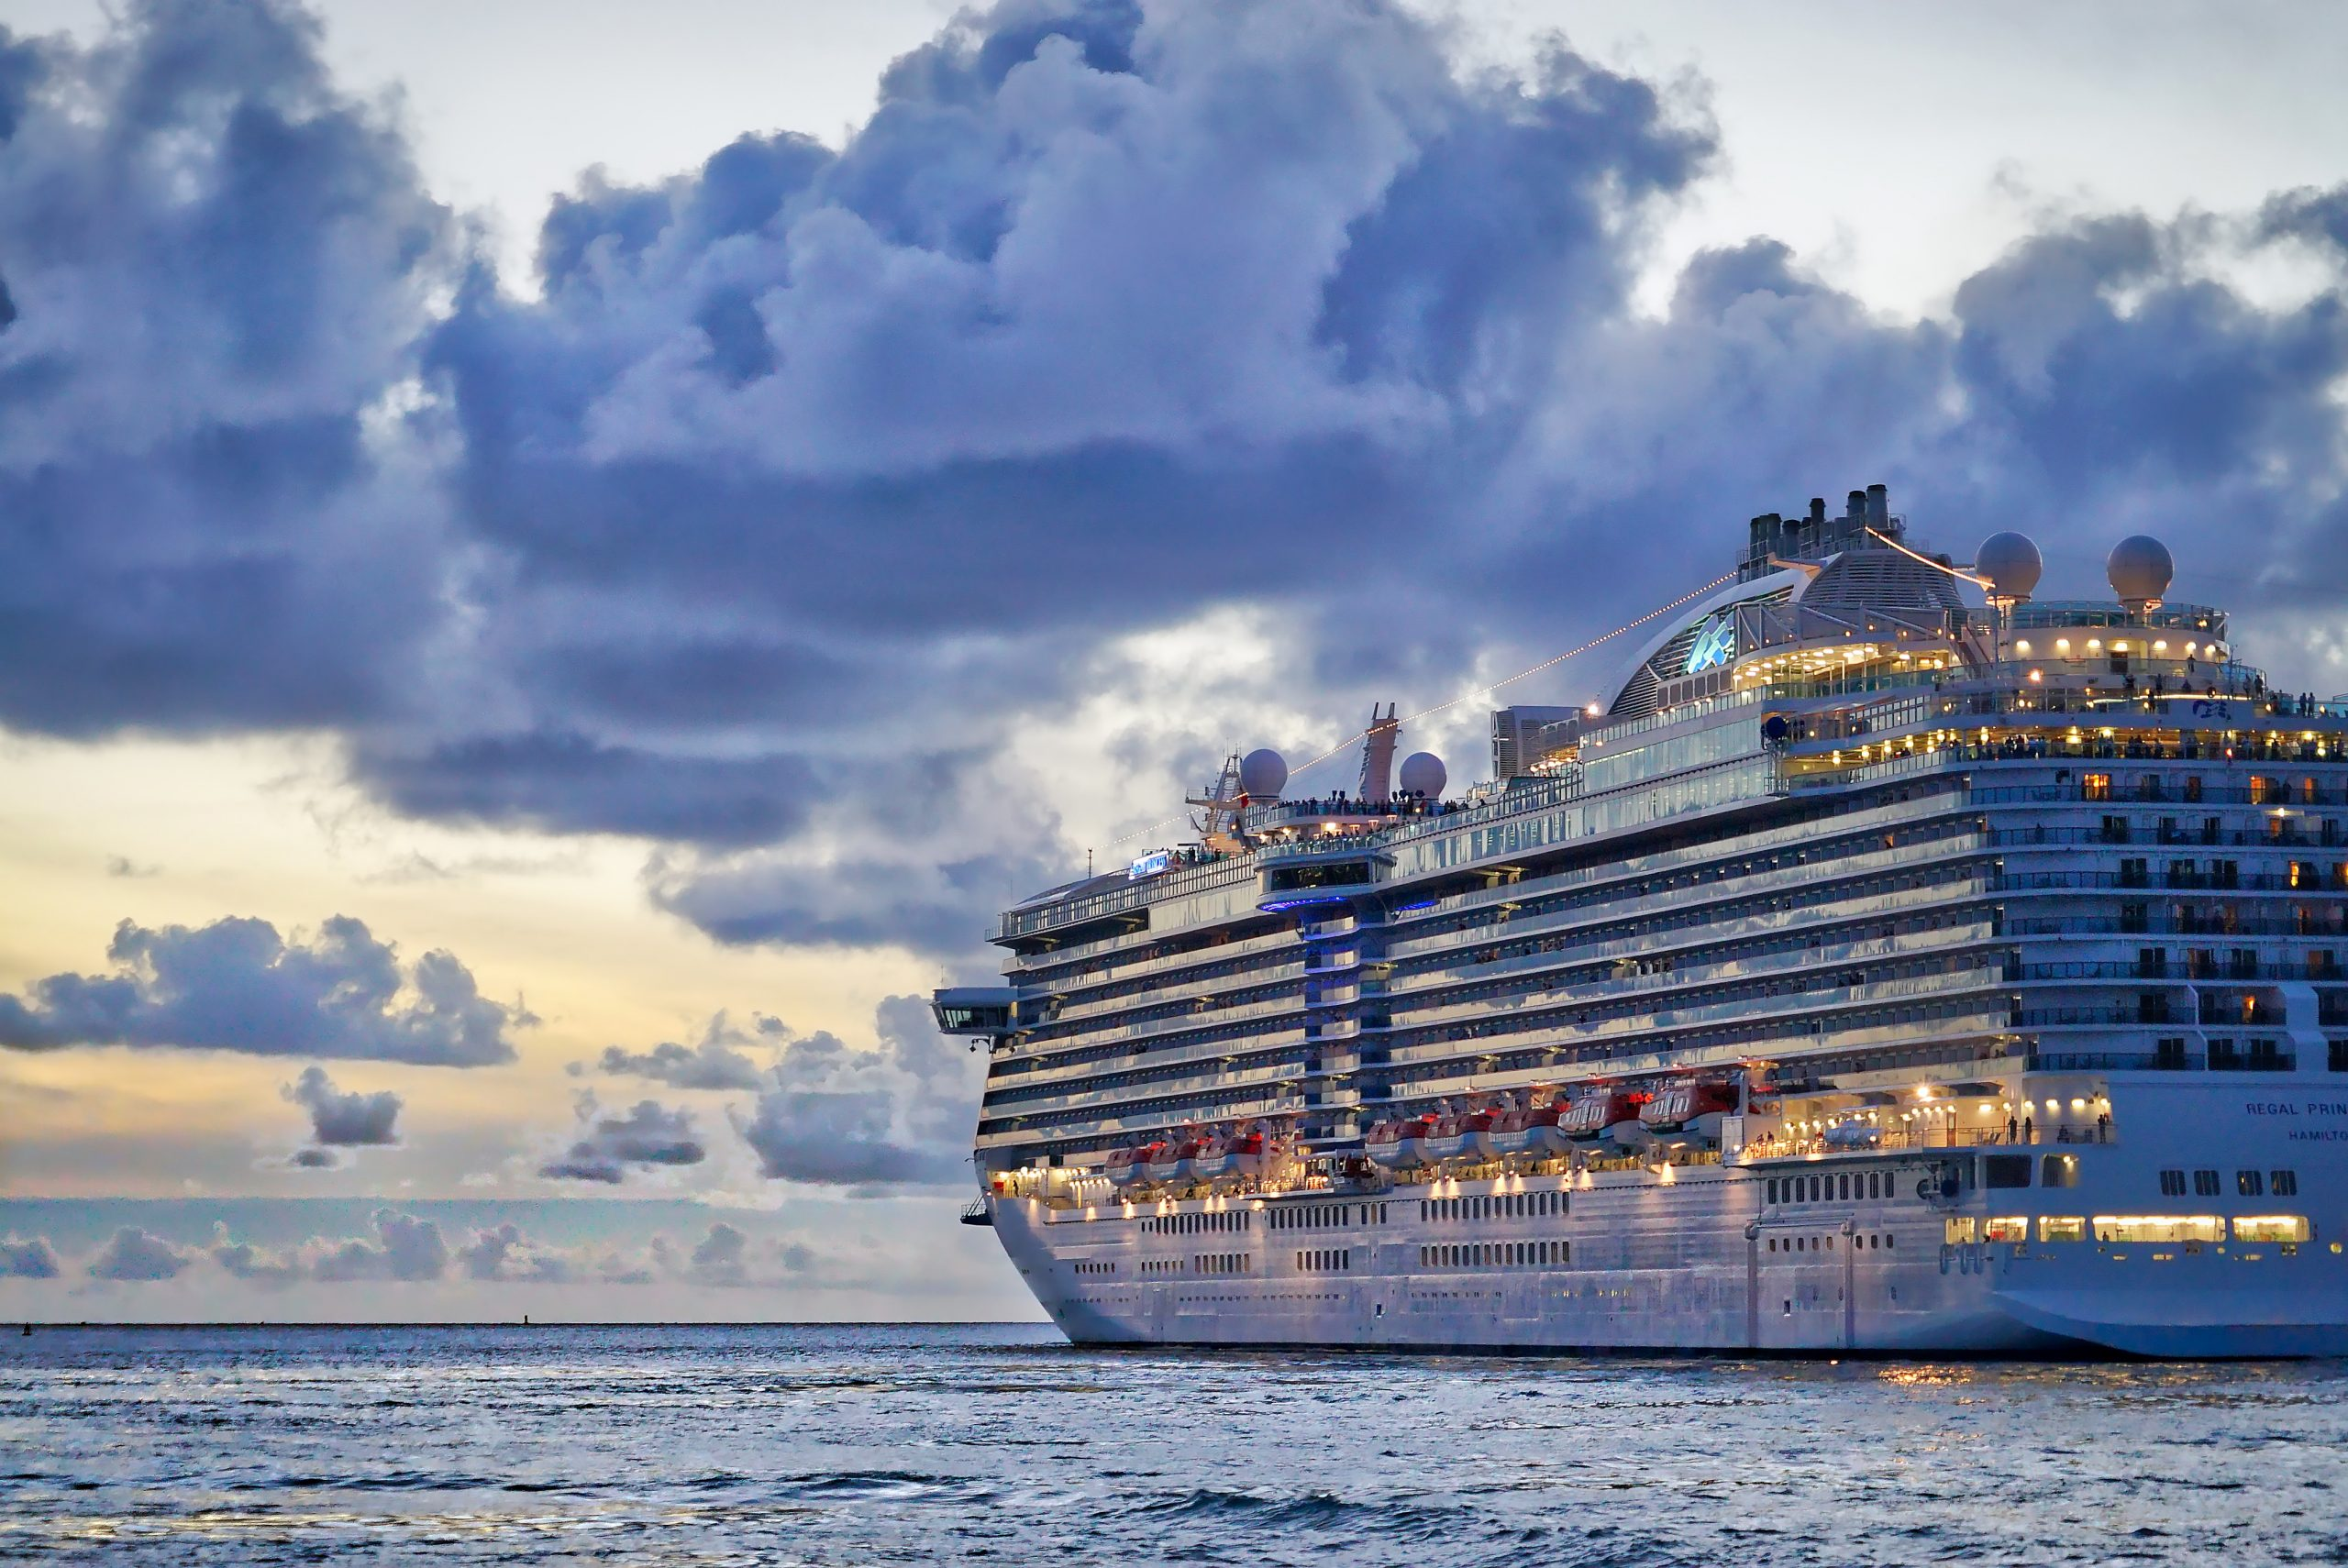 Large commercial cruise ship with lights on at sunset